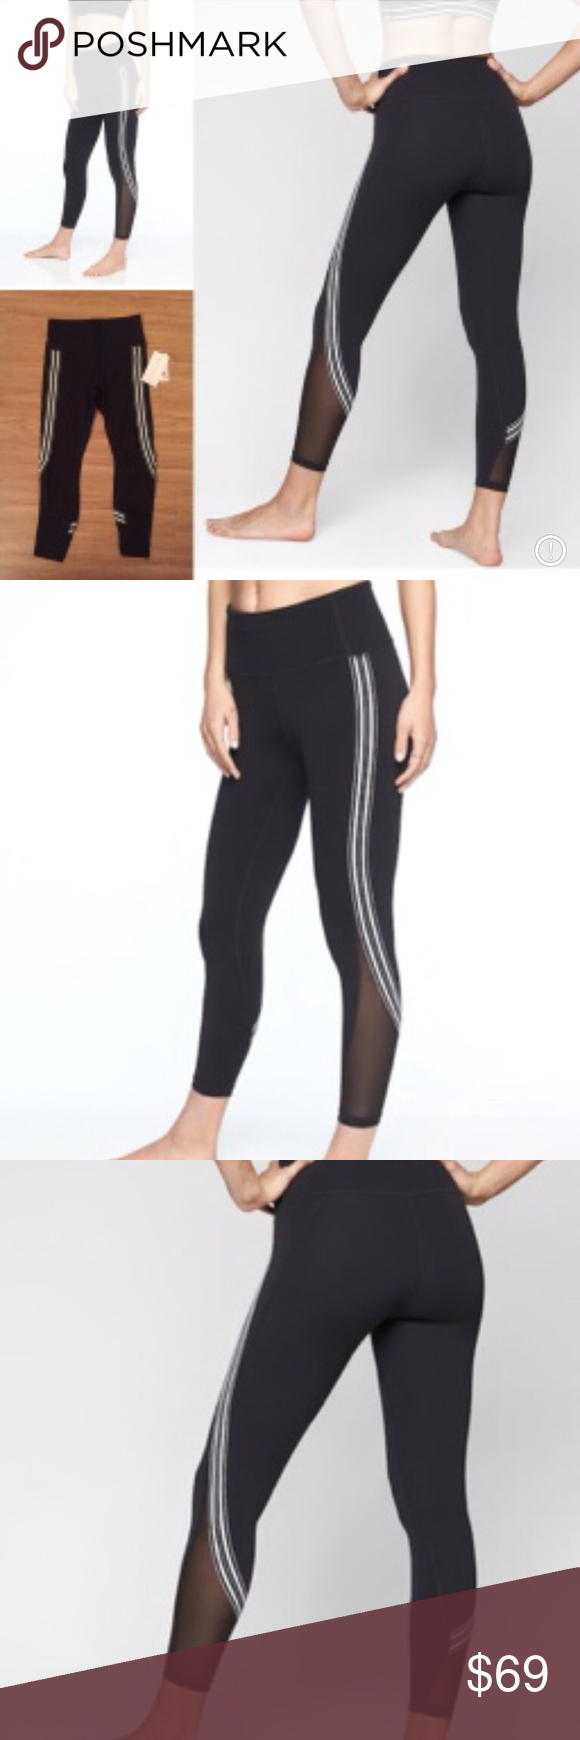 d13977bcf1f15 Athleta Side Stripe Salutation 7/8 Tight PowerVita fabric Wicking,  Breathable Fitted, High